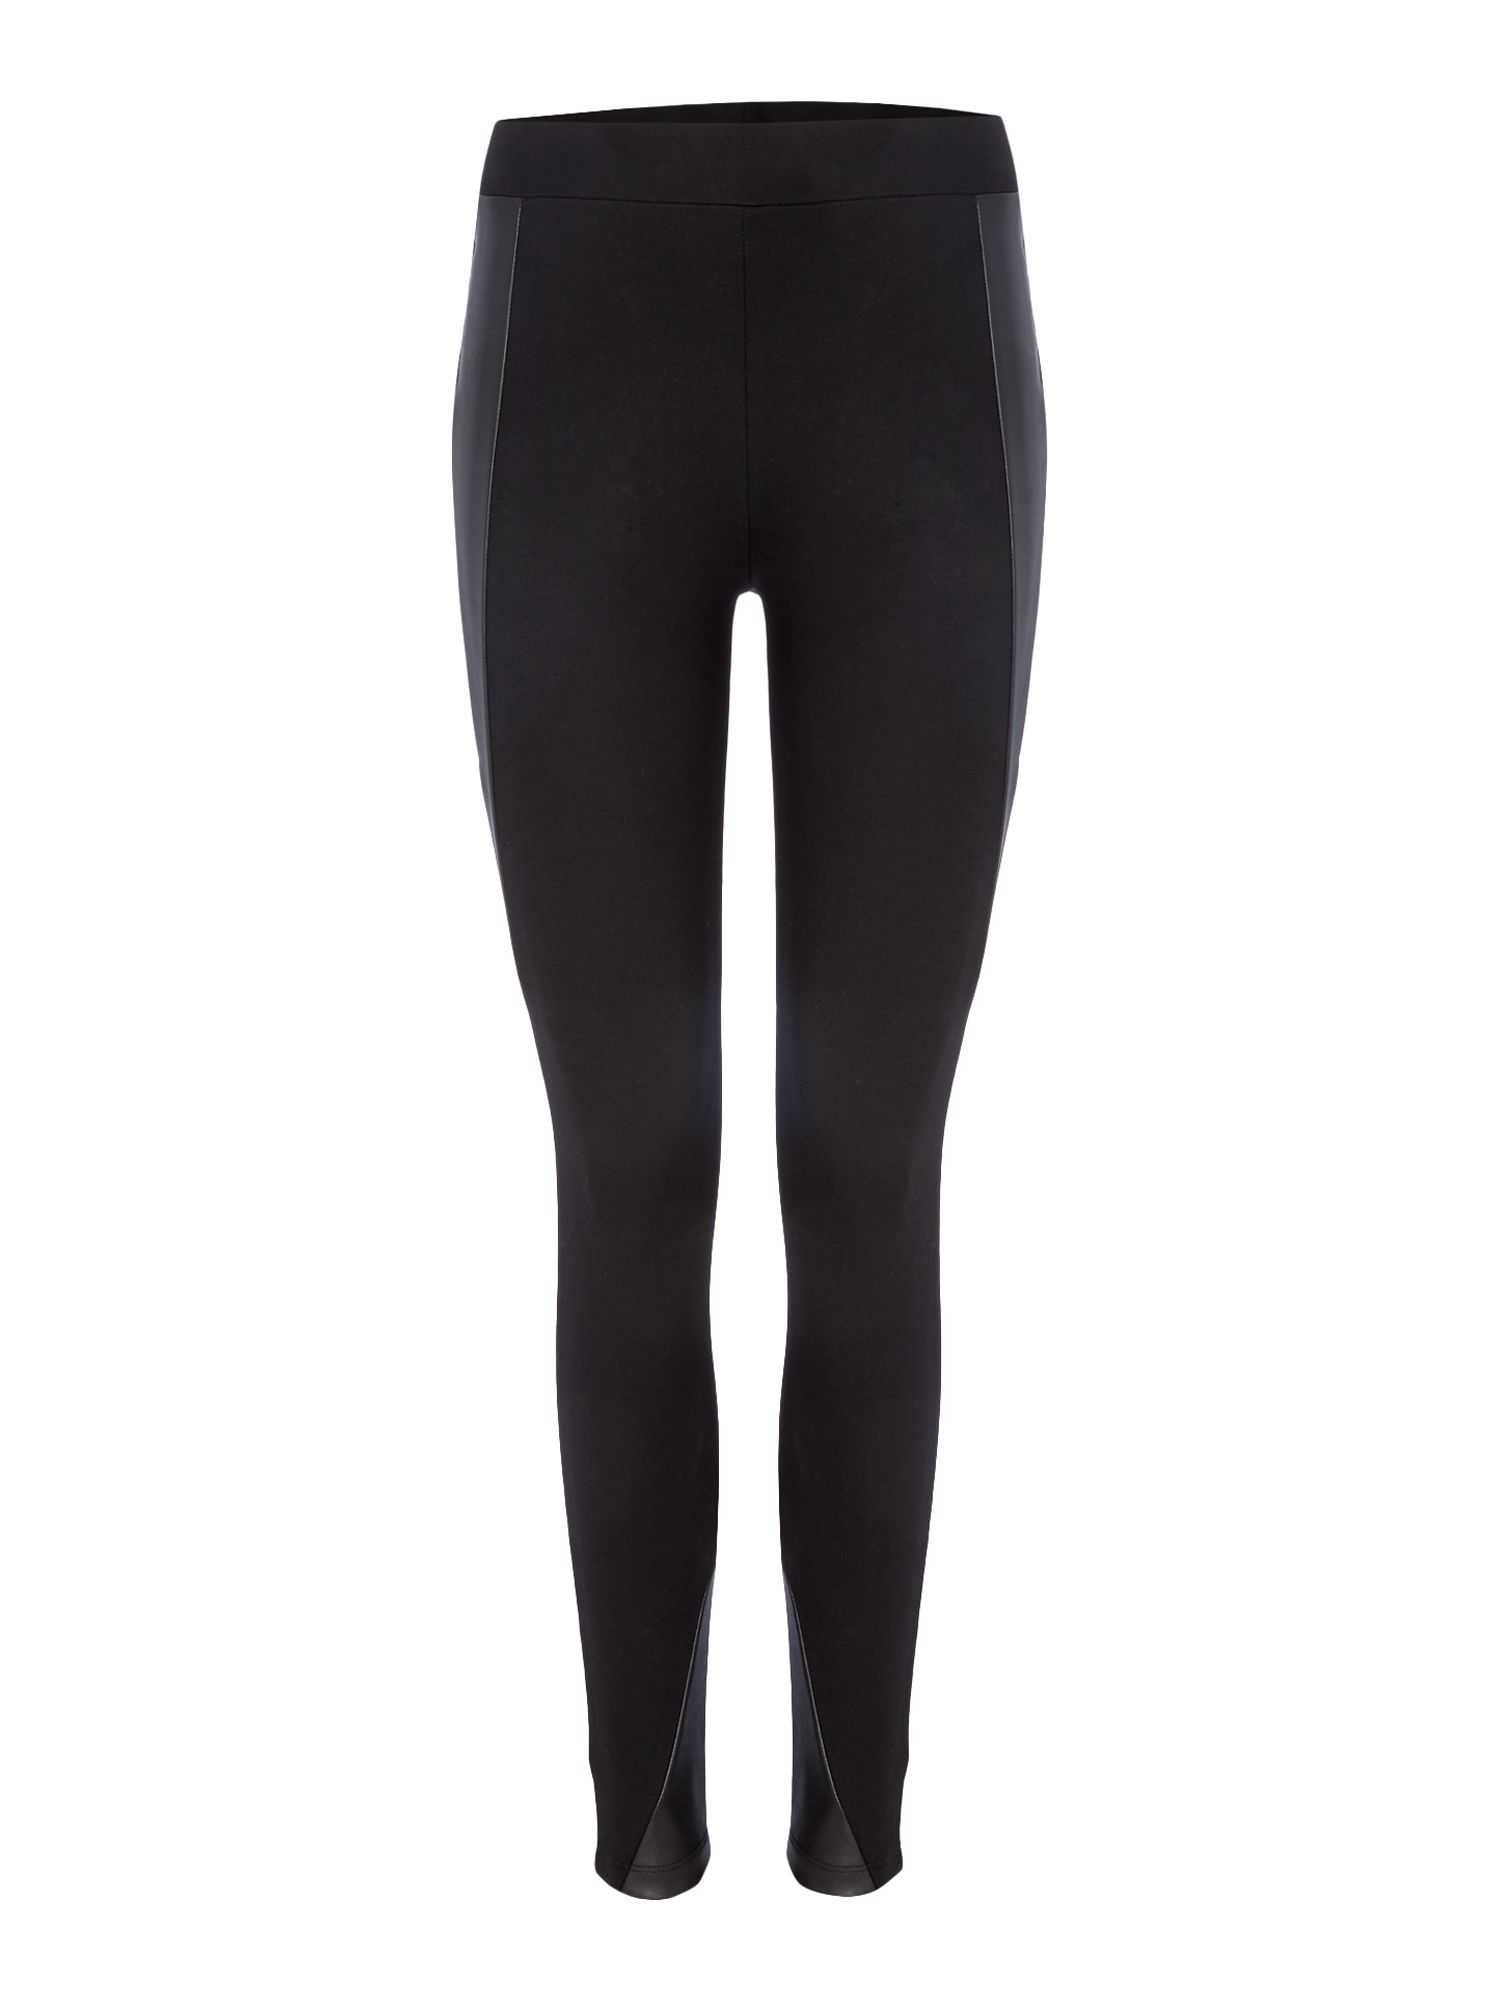 Label Lab Panelled PU Ponte Leggings, Black